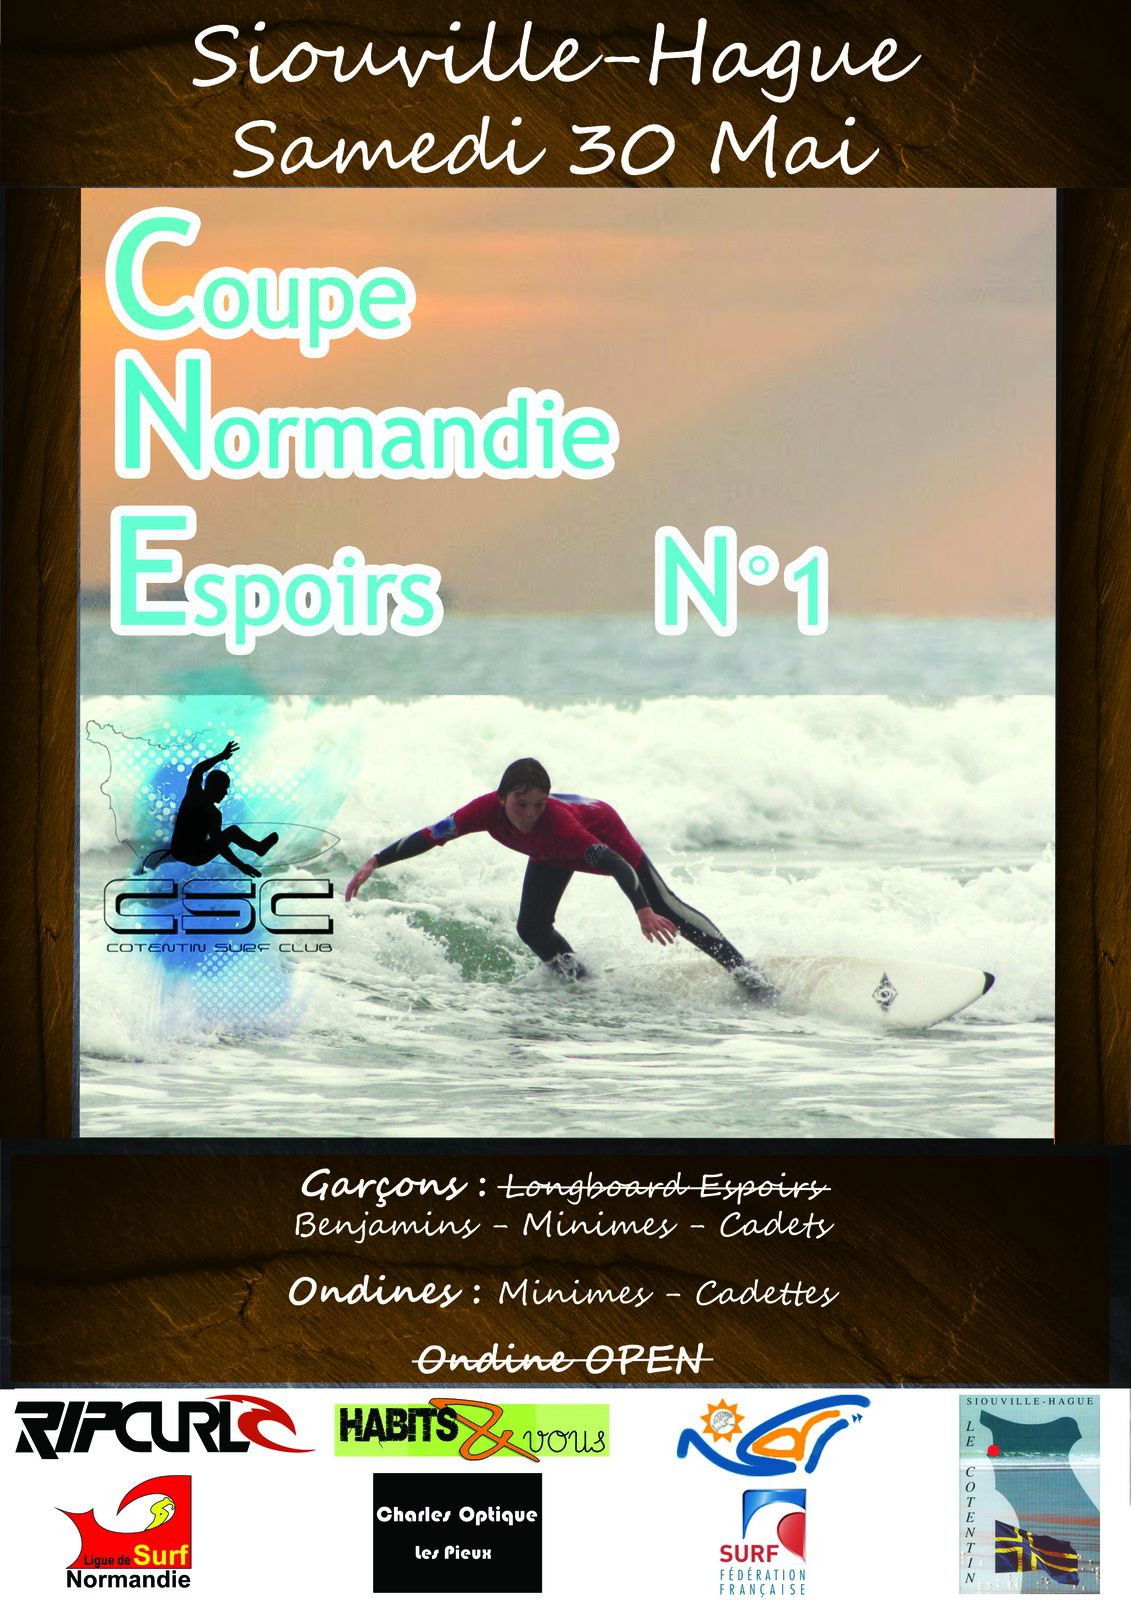 Coupe Normandie Espoirs N°1 2015